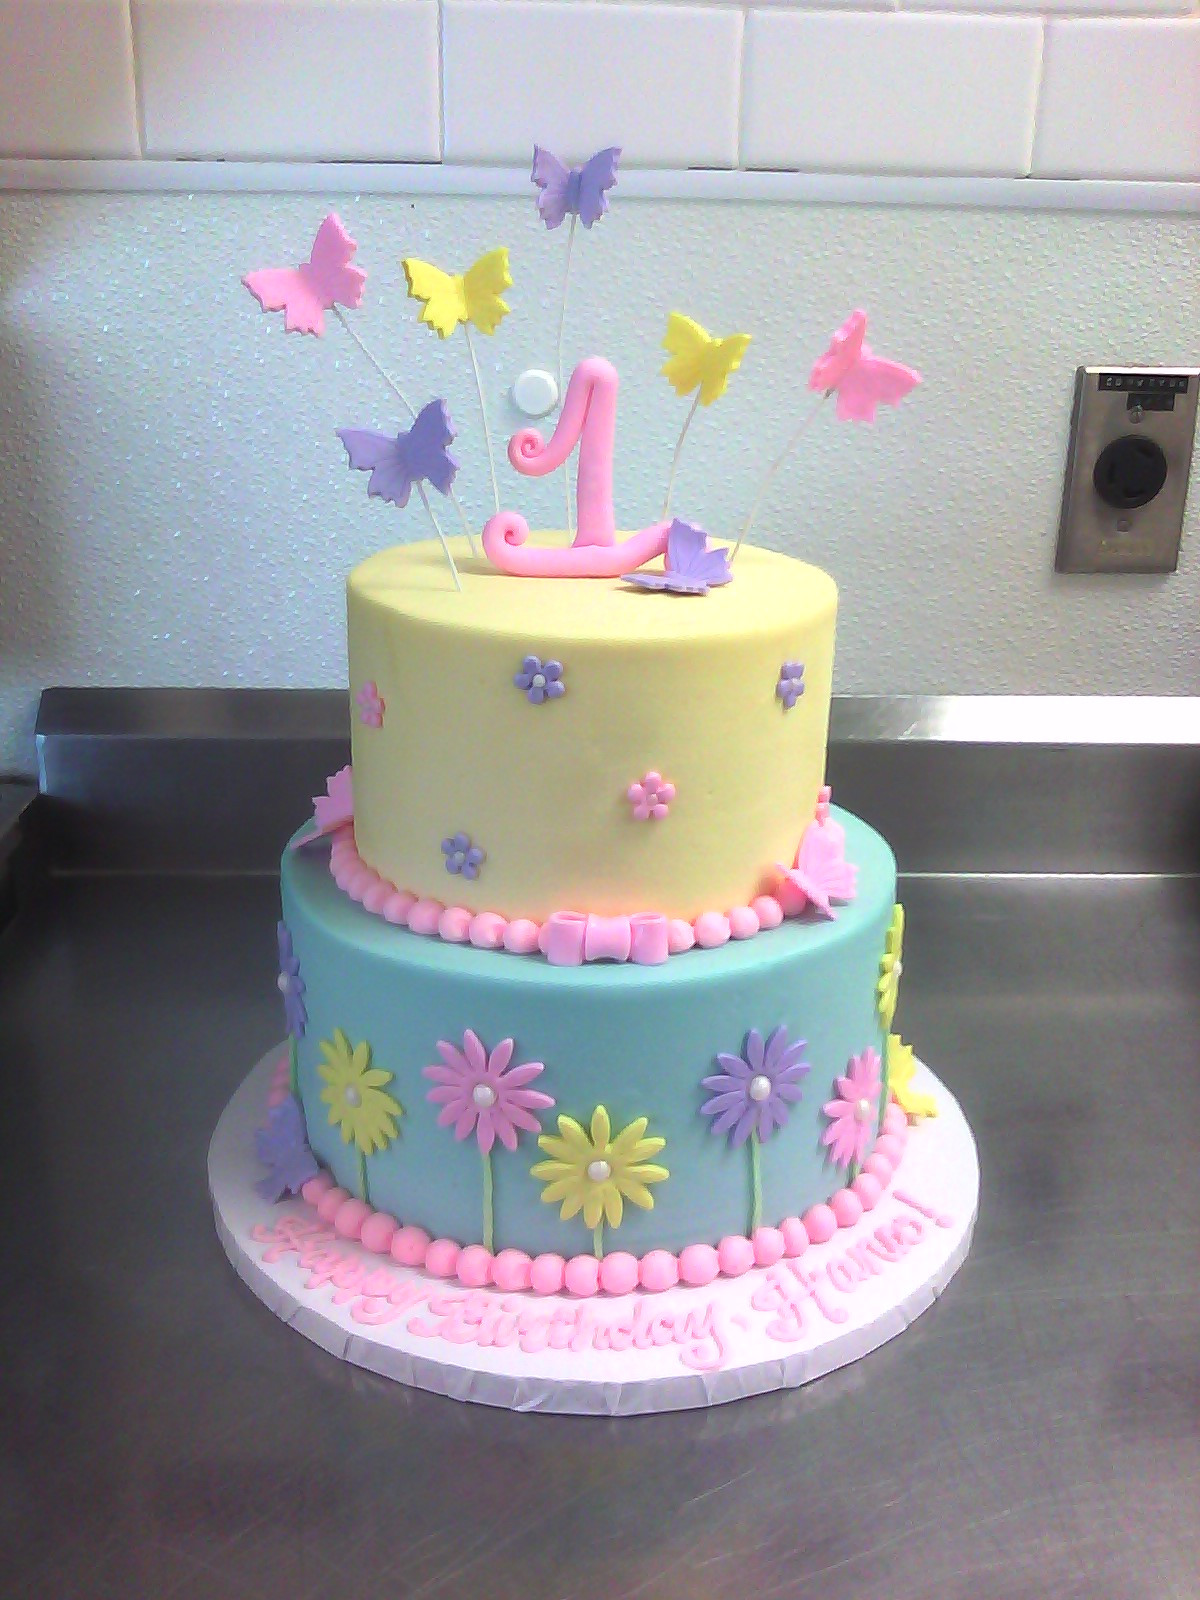 Best ideas about Cake Birthday . Save or Pin 1st Birthday Cake with Butterflies & Flowers Now.